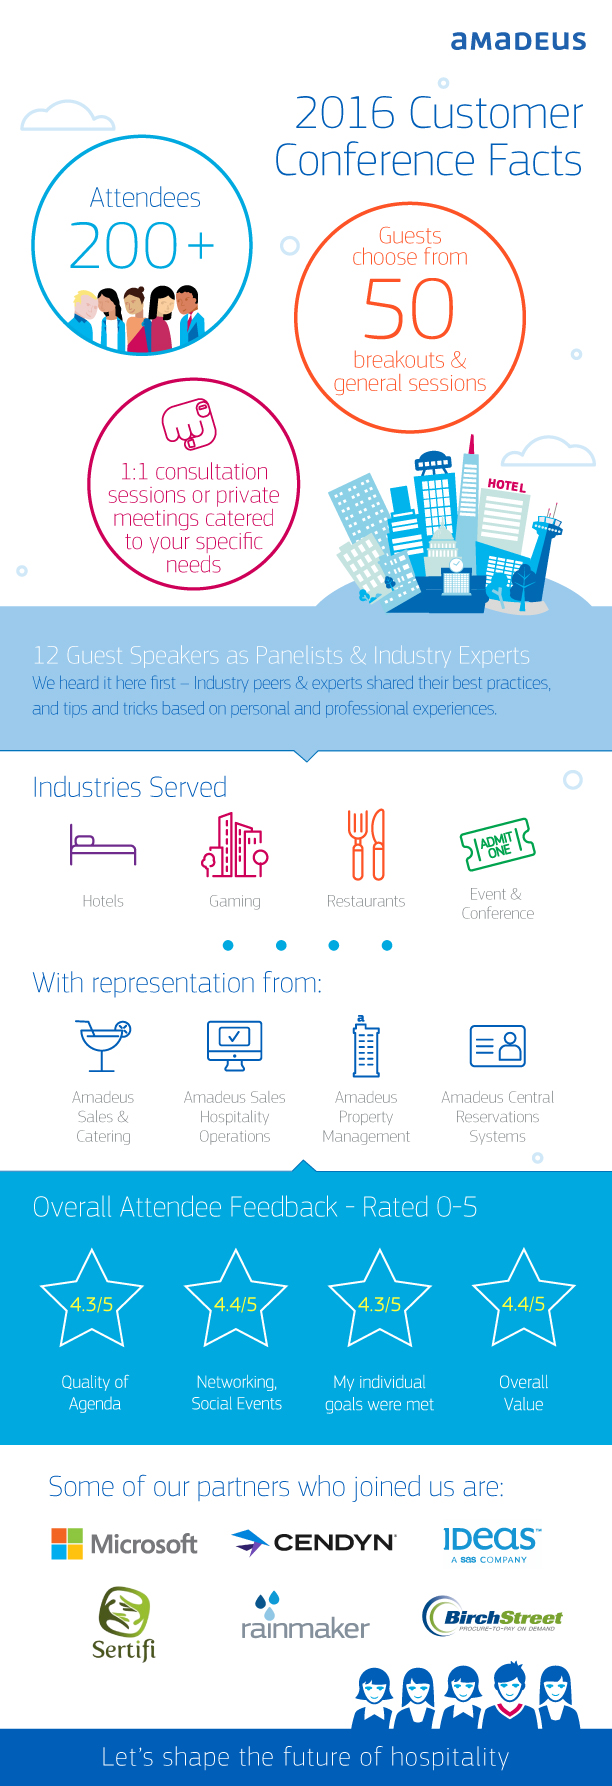 amadeus customer conference facts information infographic